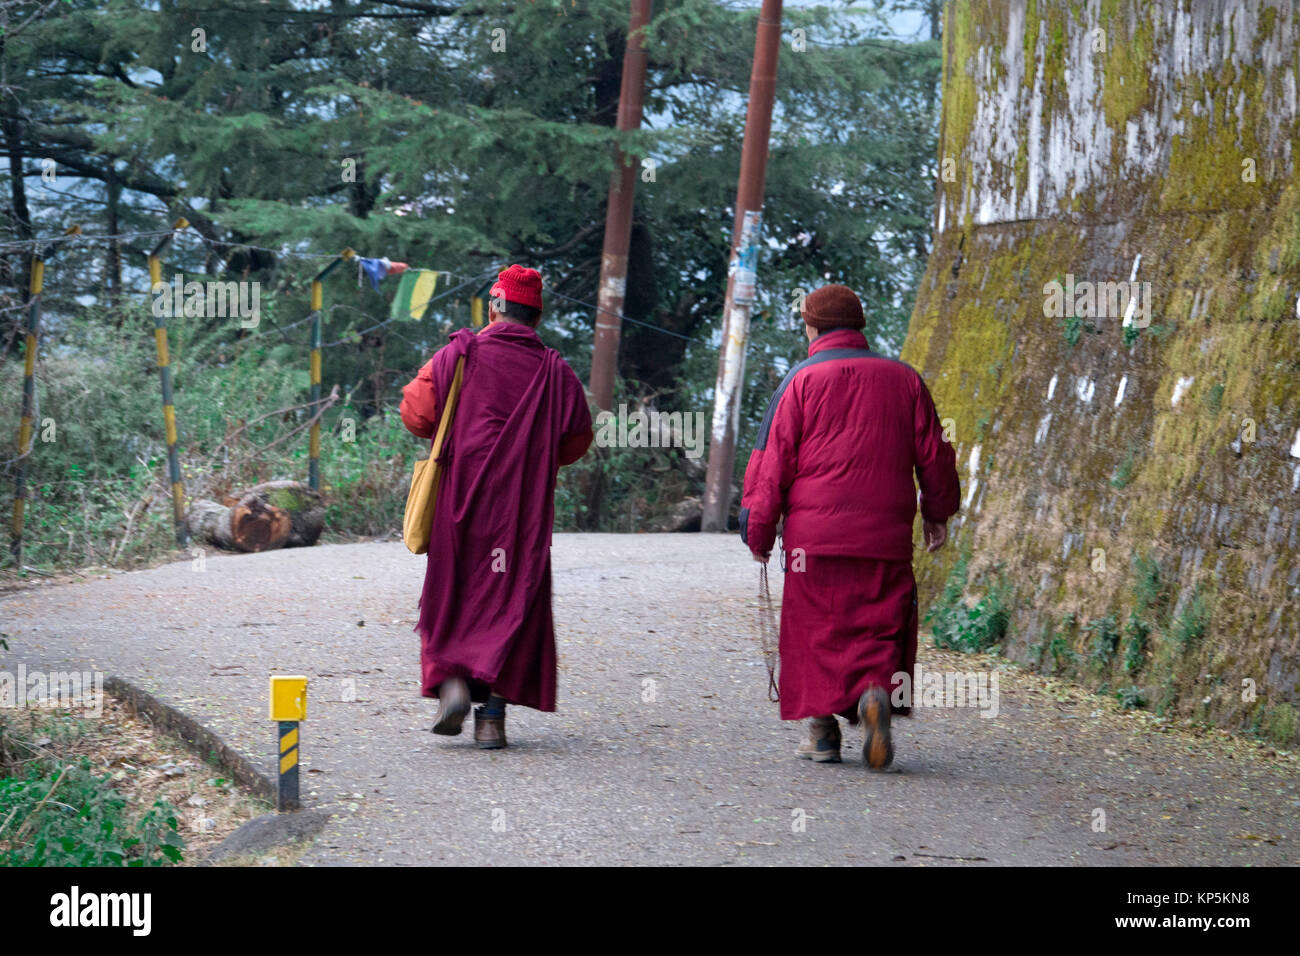 Buddhist monks walking along road at Mcleod Ganj, Himachal Pradesh, India - Stock Image